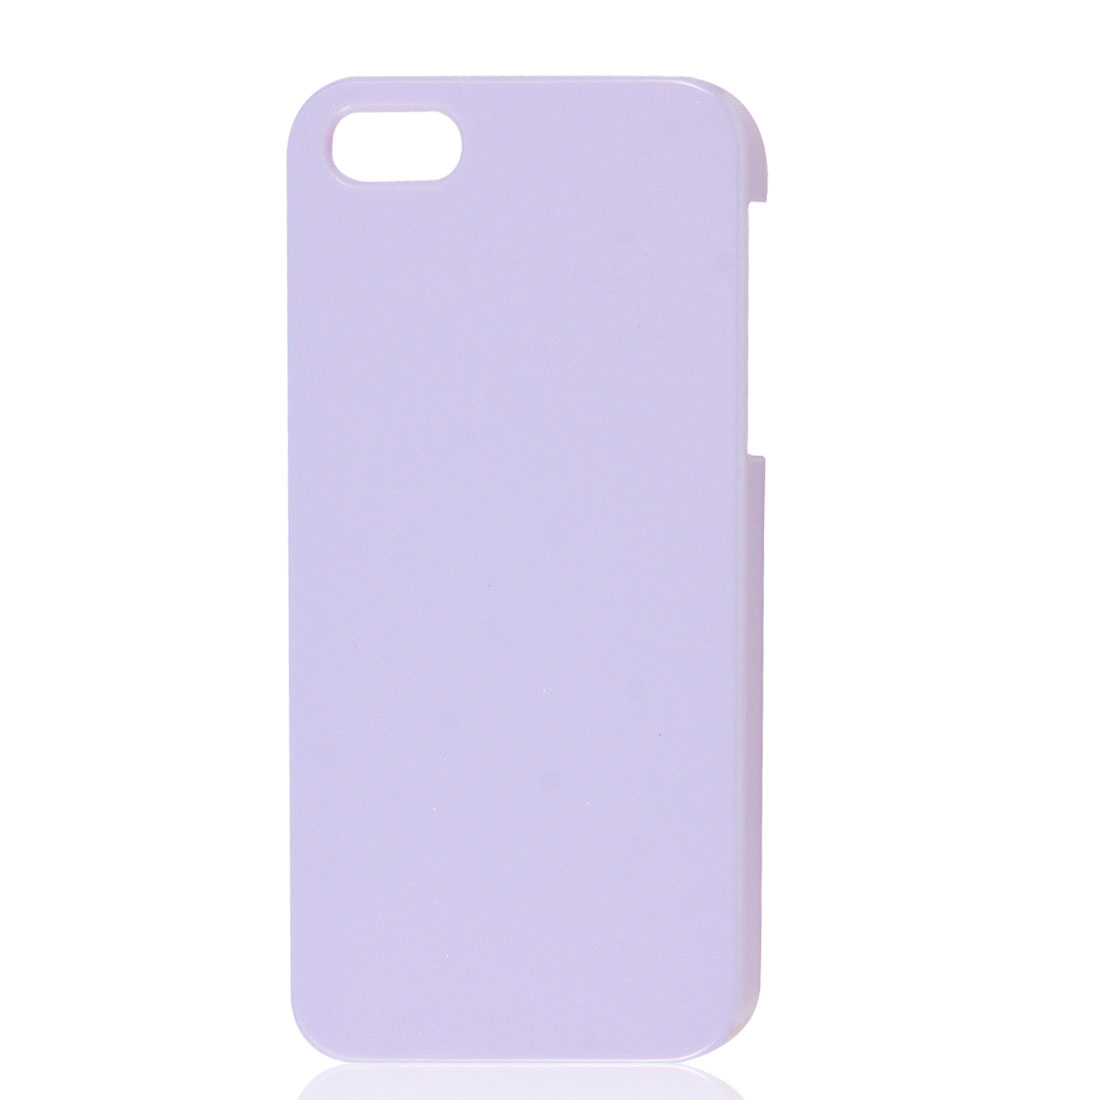 Light Purple Hard Back Case Cover Skin for Apple iPhone 5 5G